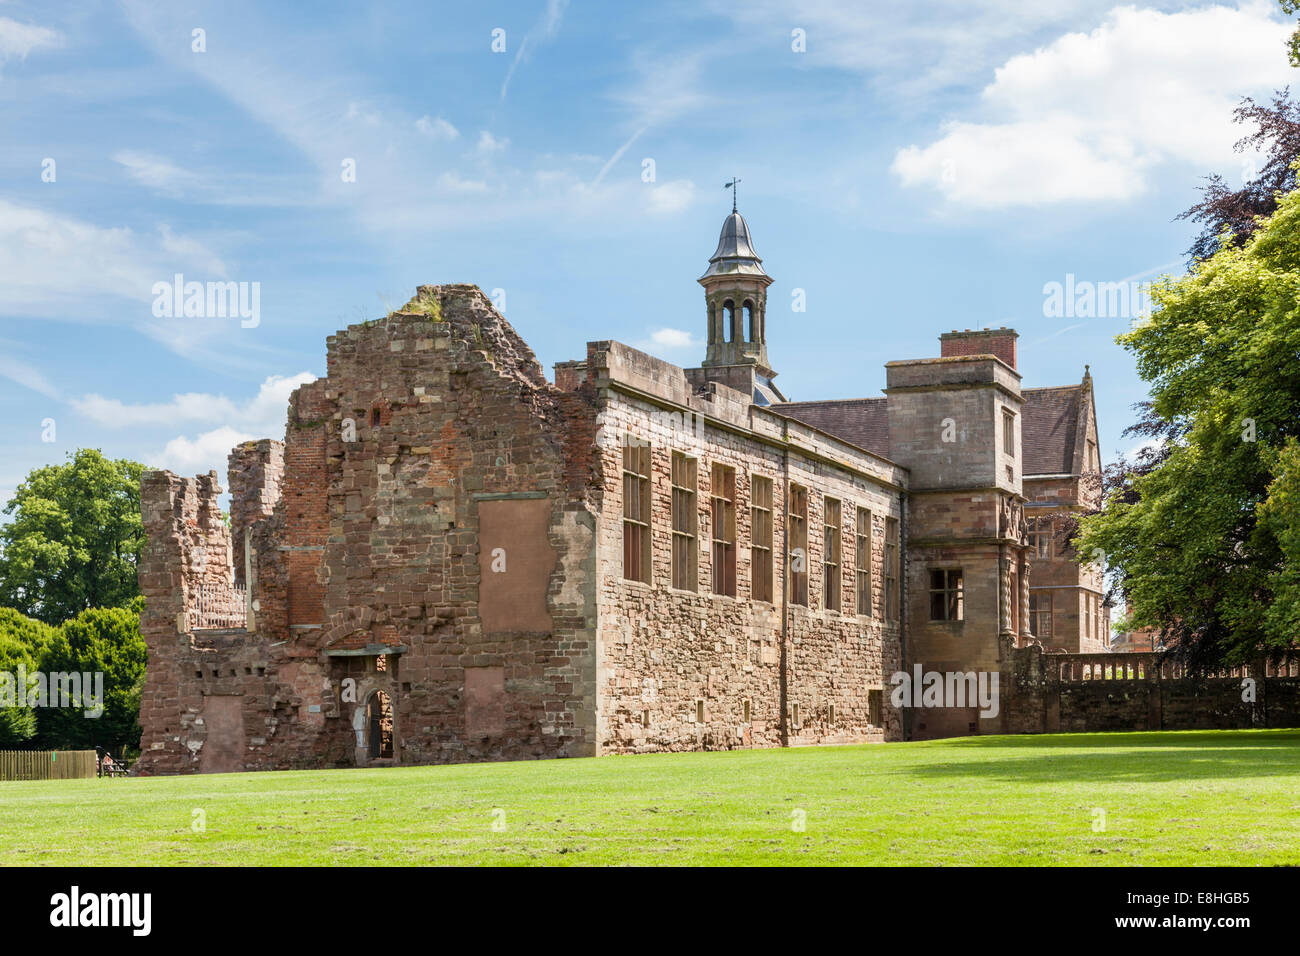 The long gallery of the North Wing of Rufford Abbey, Rufford Country Park, Nottinghamshire, England, UK - Stock Image